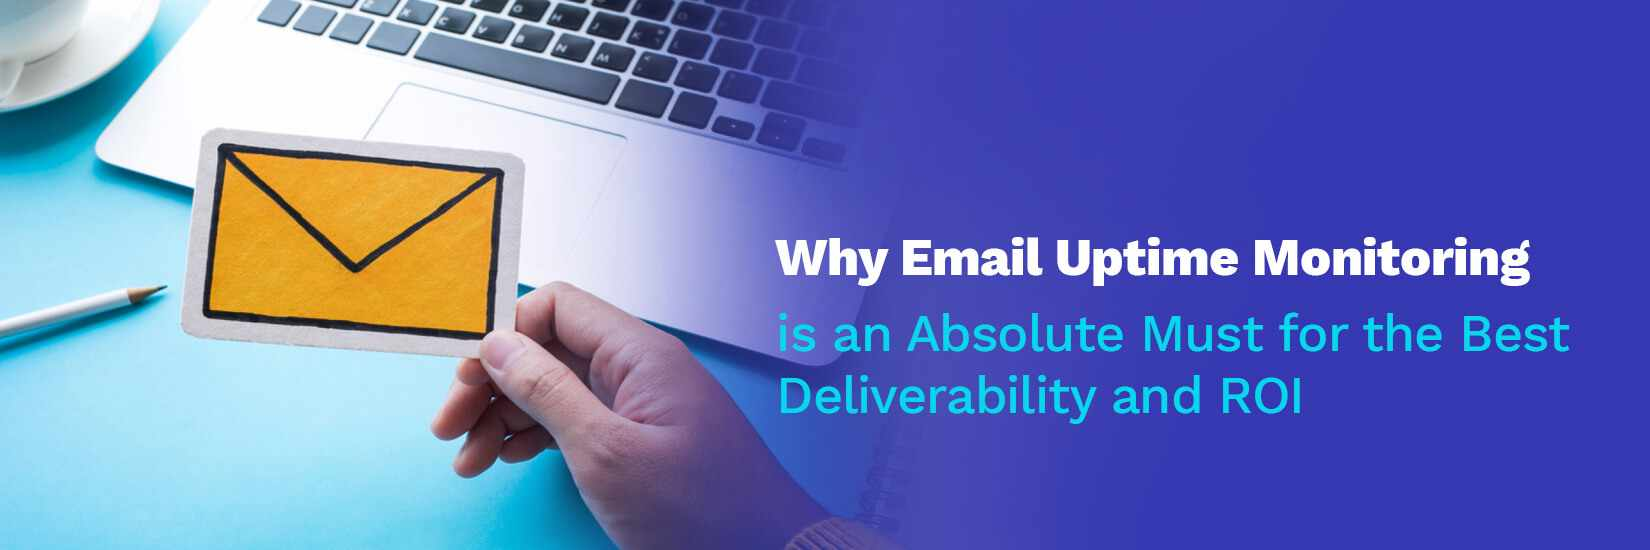 Why Email Uptime Monitoring is an Absolute Must for the Best Deliverability and ROI